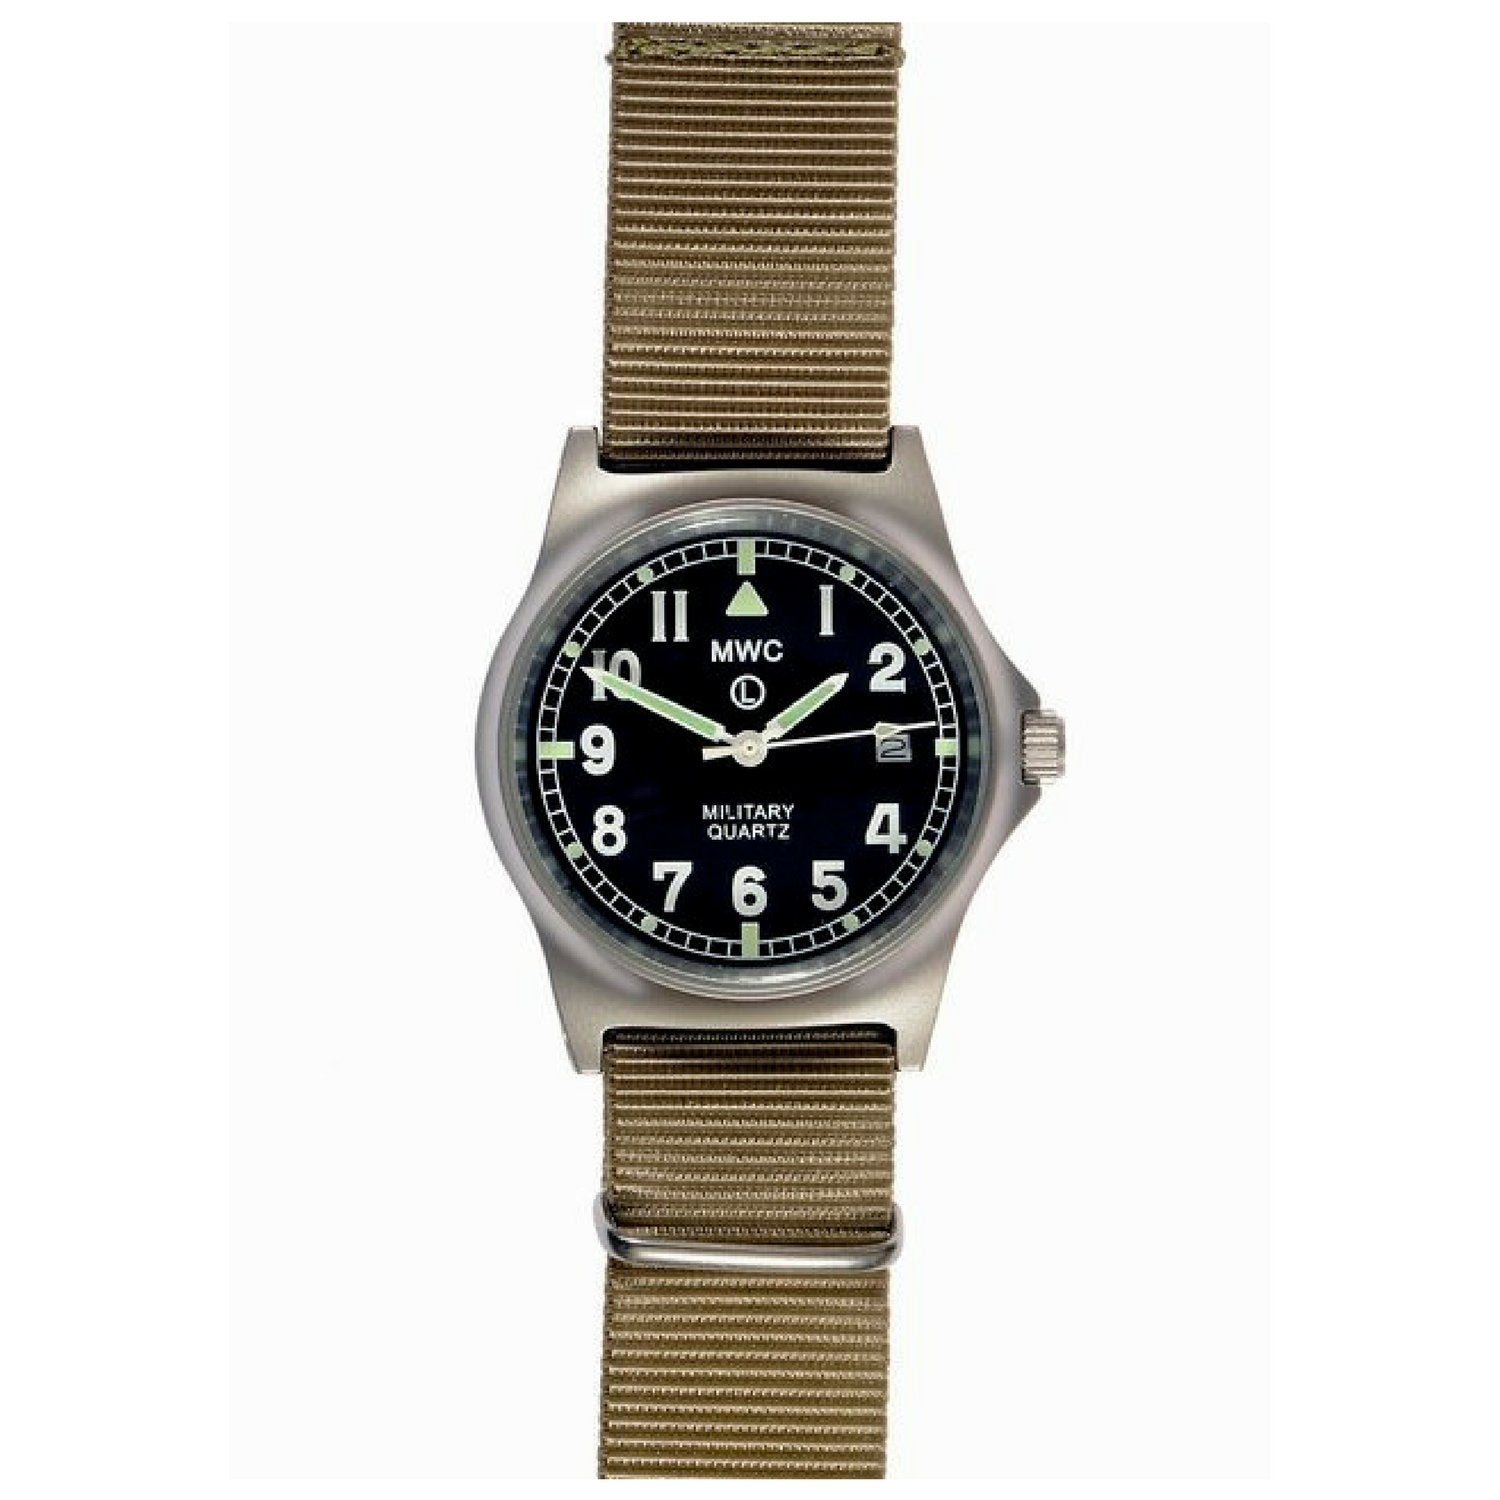 MWC G10 LM Military Watch (Desert Strap)